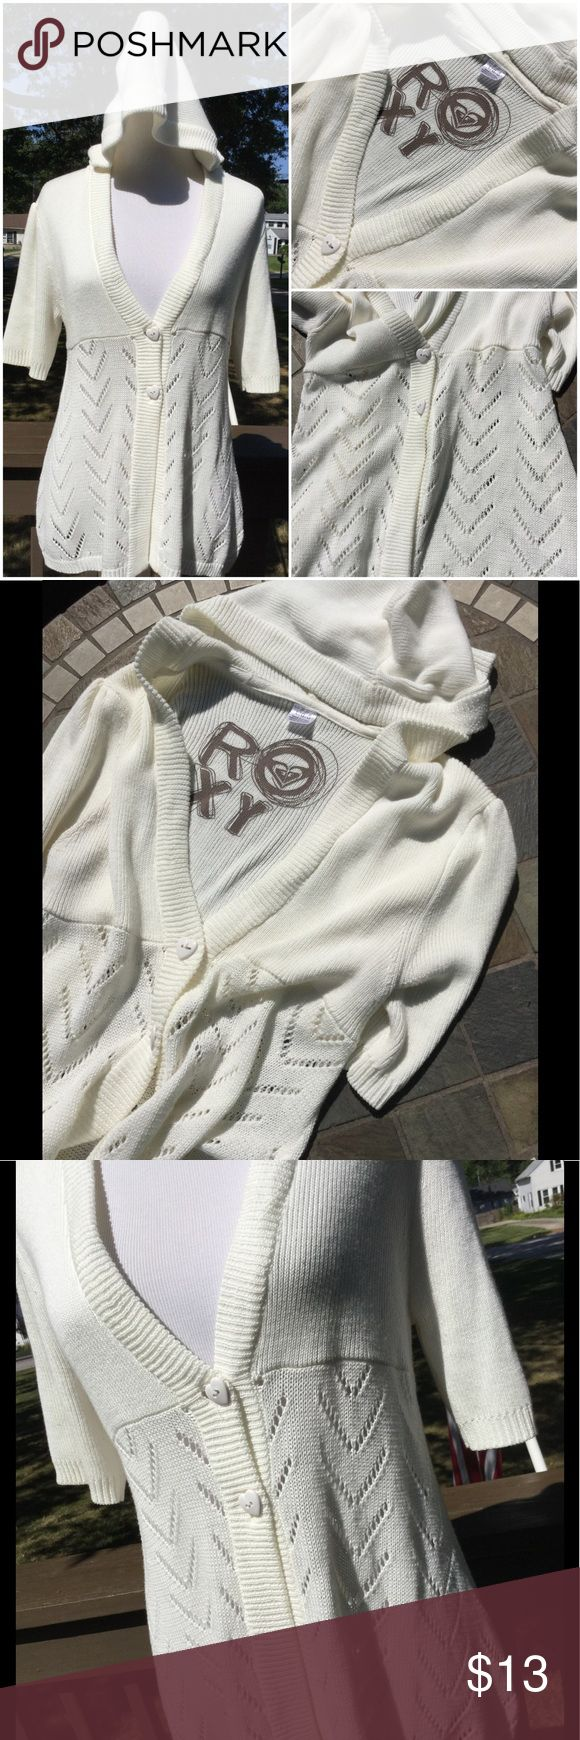 """🆕 Roxy Cardigan Sweater with Hood ! 🌸  Roxy ! Light cream colored cardigan sweater with a hood ! V neckline to 2 heart shaped buttons ! About 27"""" length ! Cotton & acrylic ! Bottom half has open knit chevron design ! Short sleeves ! So cute ! 🌸 Roxy Sweaters Cardigans"""